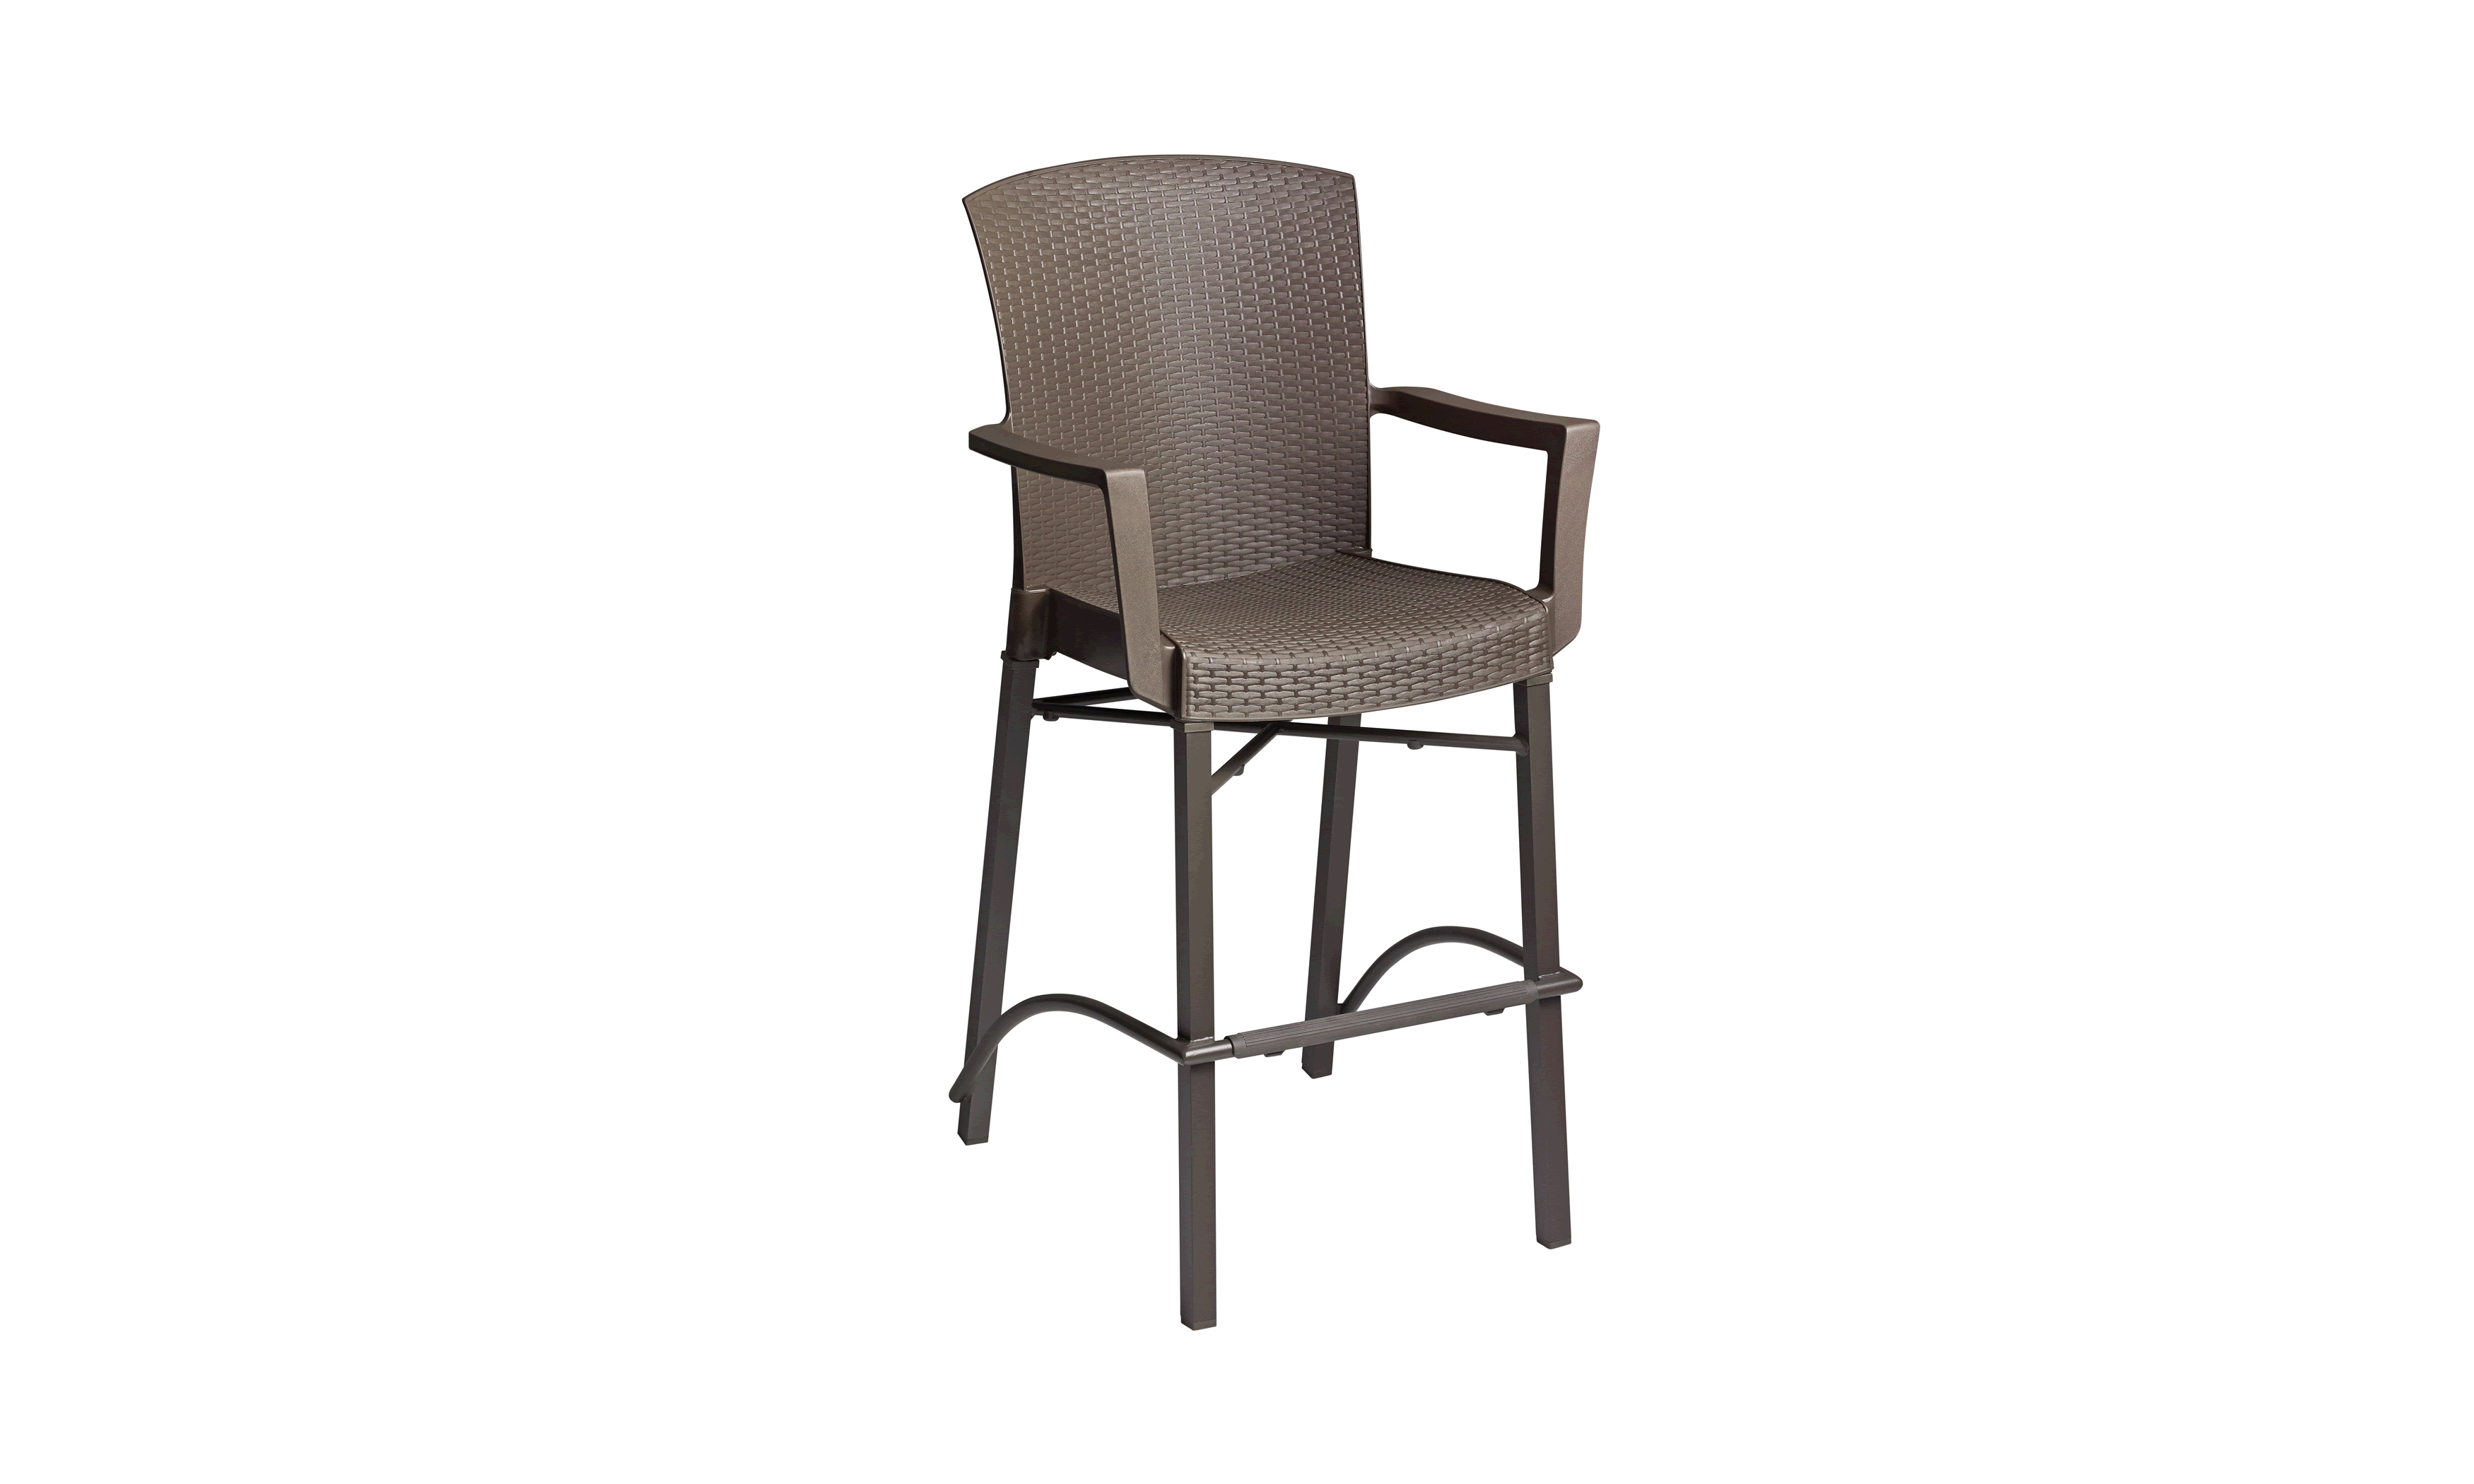 Havana Classic Barstool with Arms - Bronze